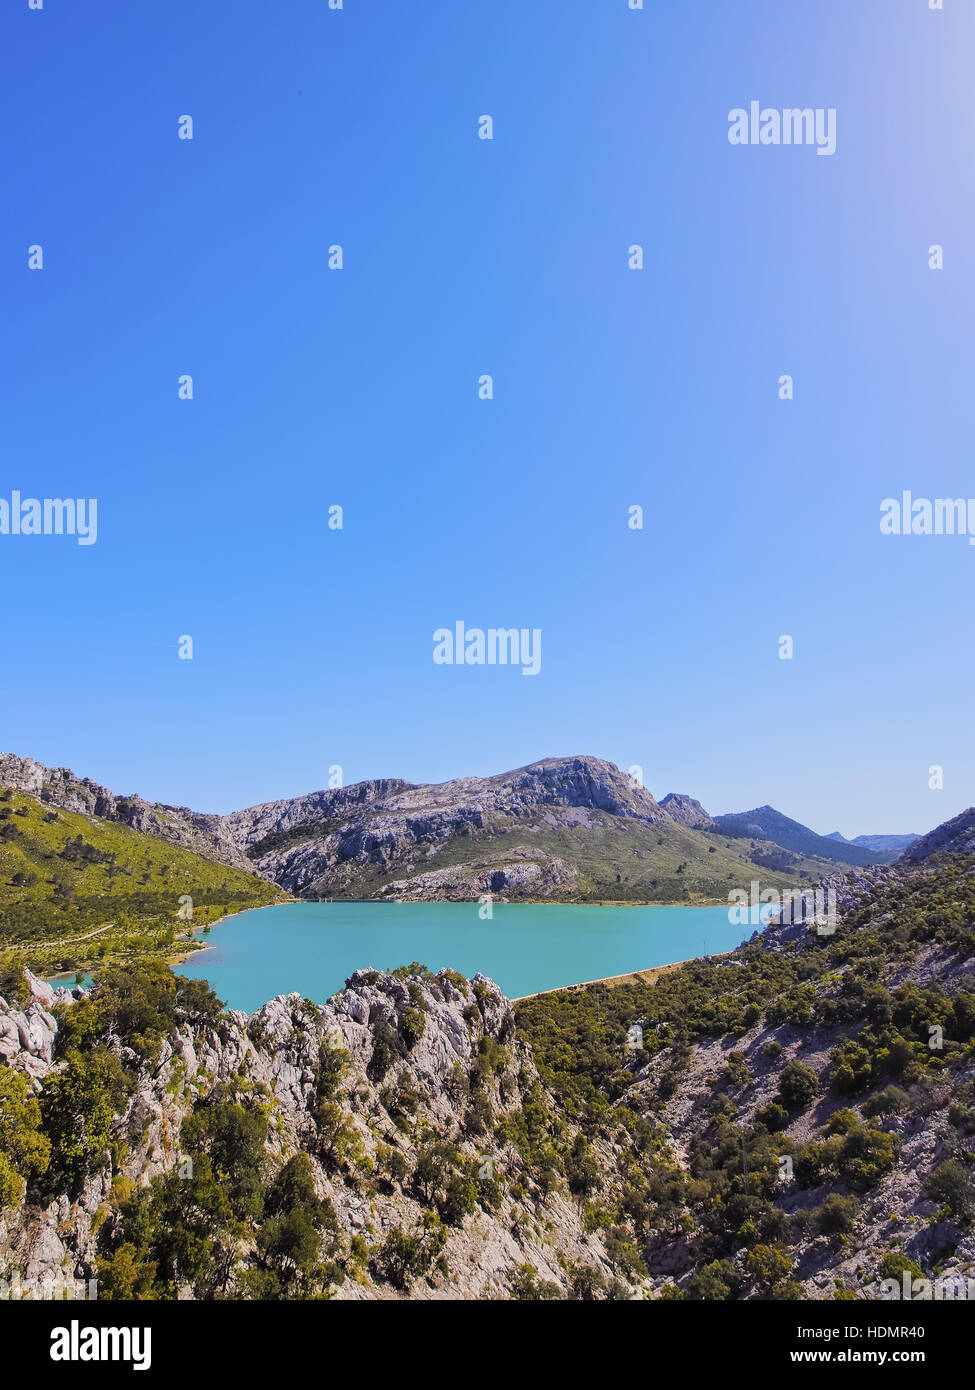 Artificial lake, Embalse de Gorg Blau, Serra de Tramuntana, UNESCO World Heritage Site, Majorca, Balearic Islands, - Stock Image